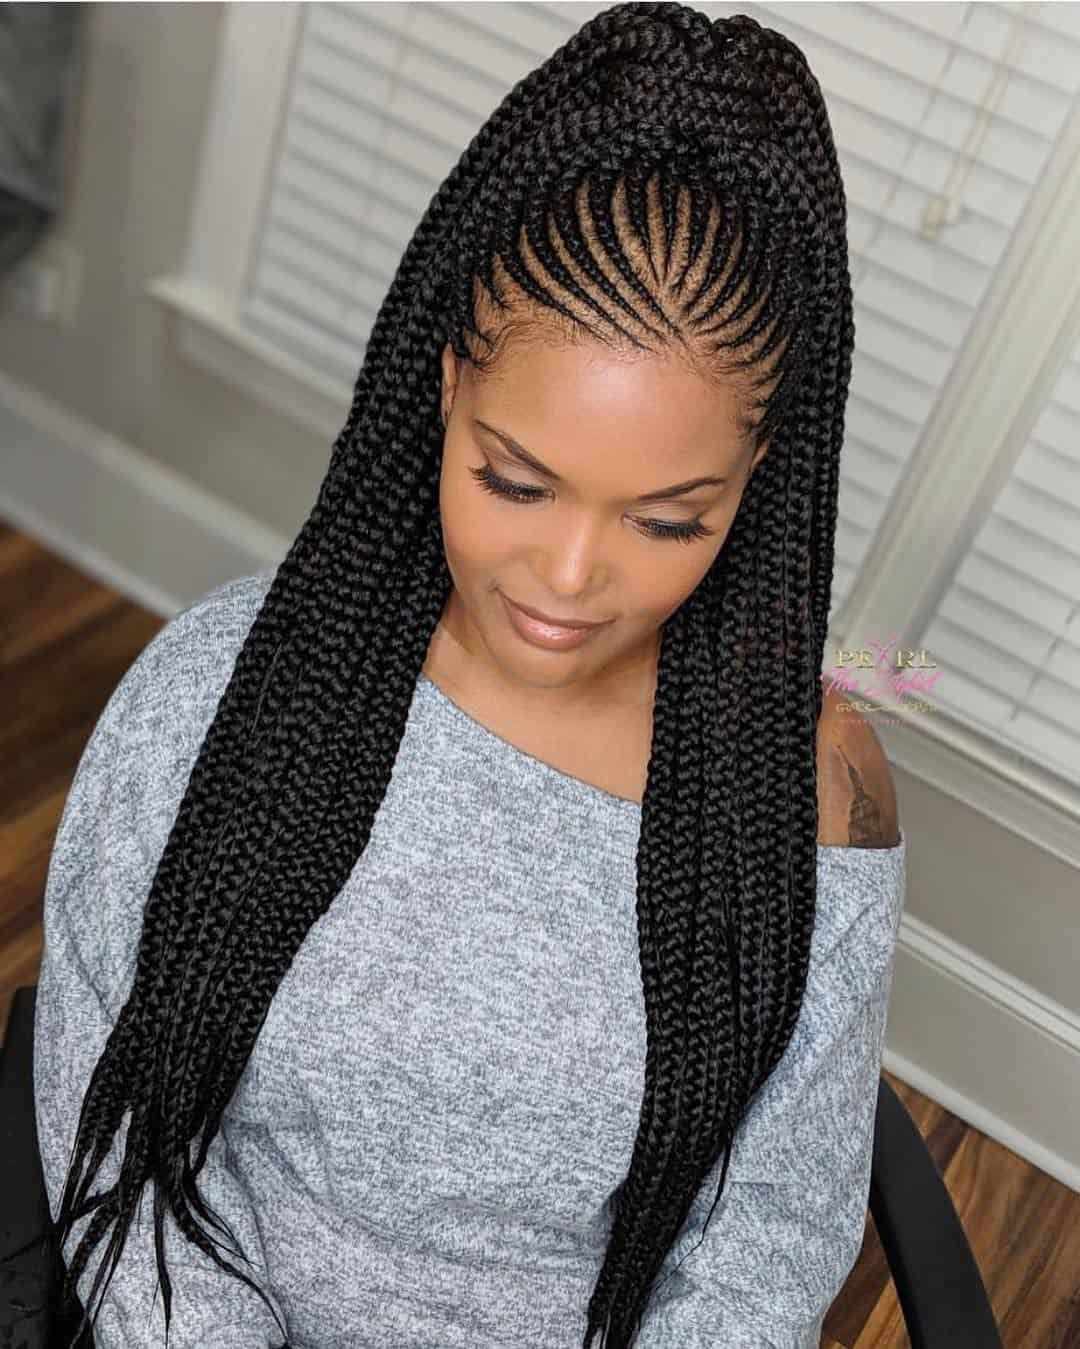 120 African Braids Hairstyle Pictures To Inspire You Thrivenaija African Braids Hairstyles Pictures Braids Hairstyles Pictures African Braids Hairstyles